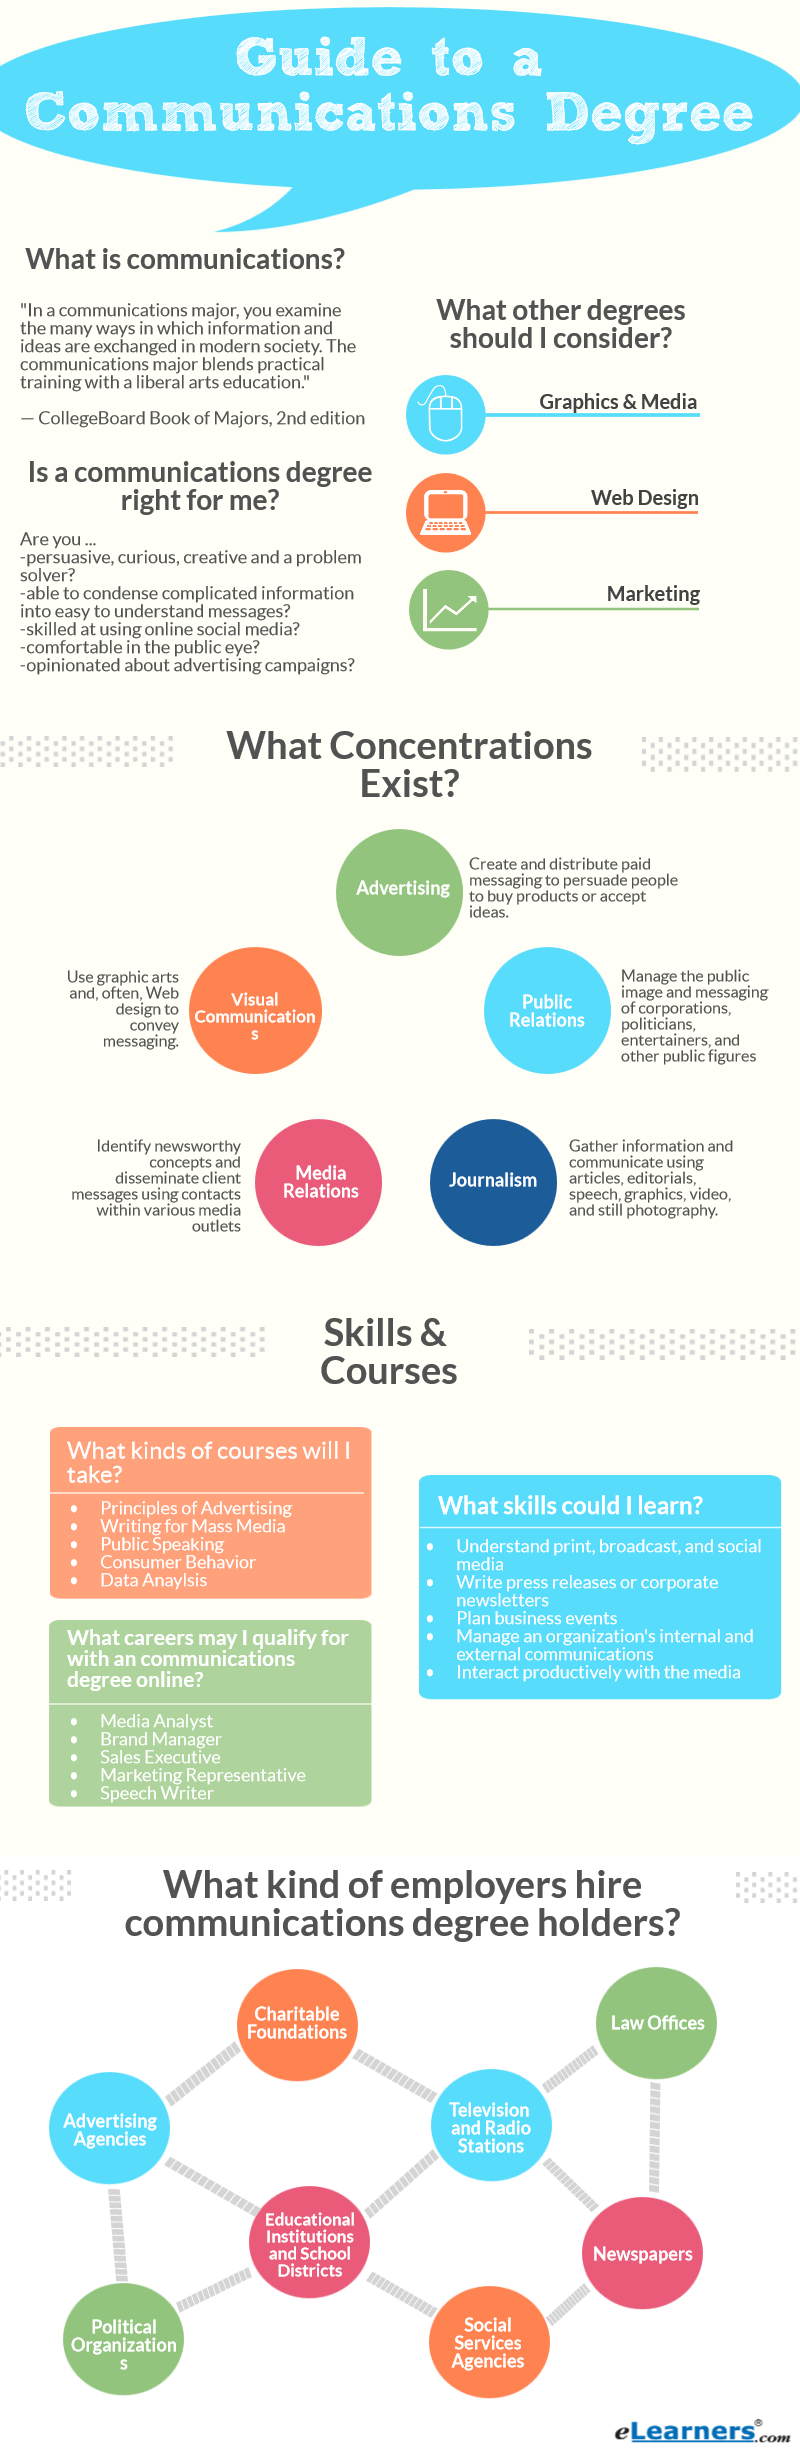 mini guide to a communications degree online elearners communications degree